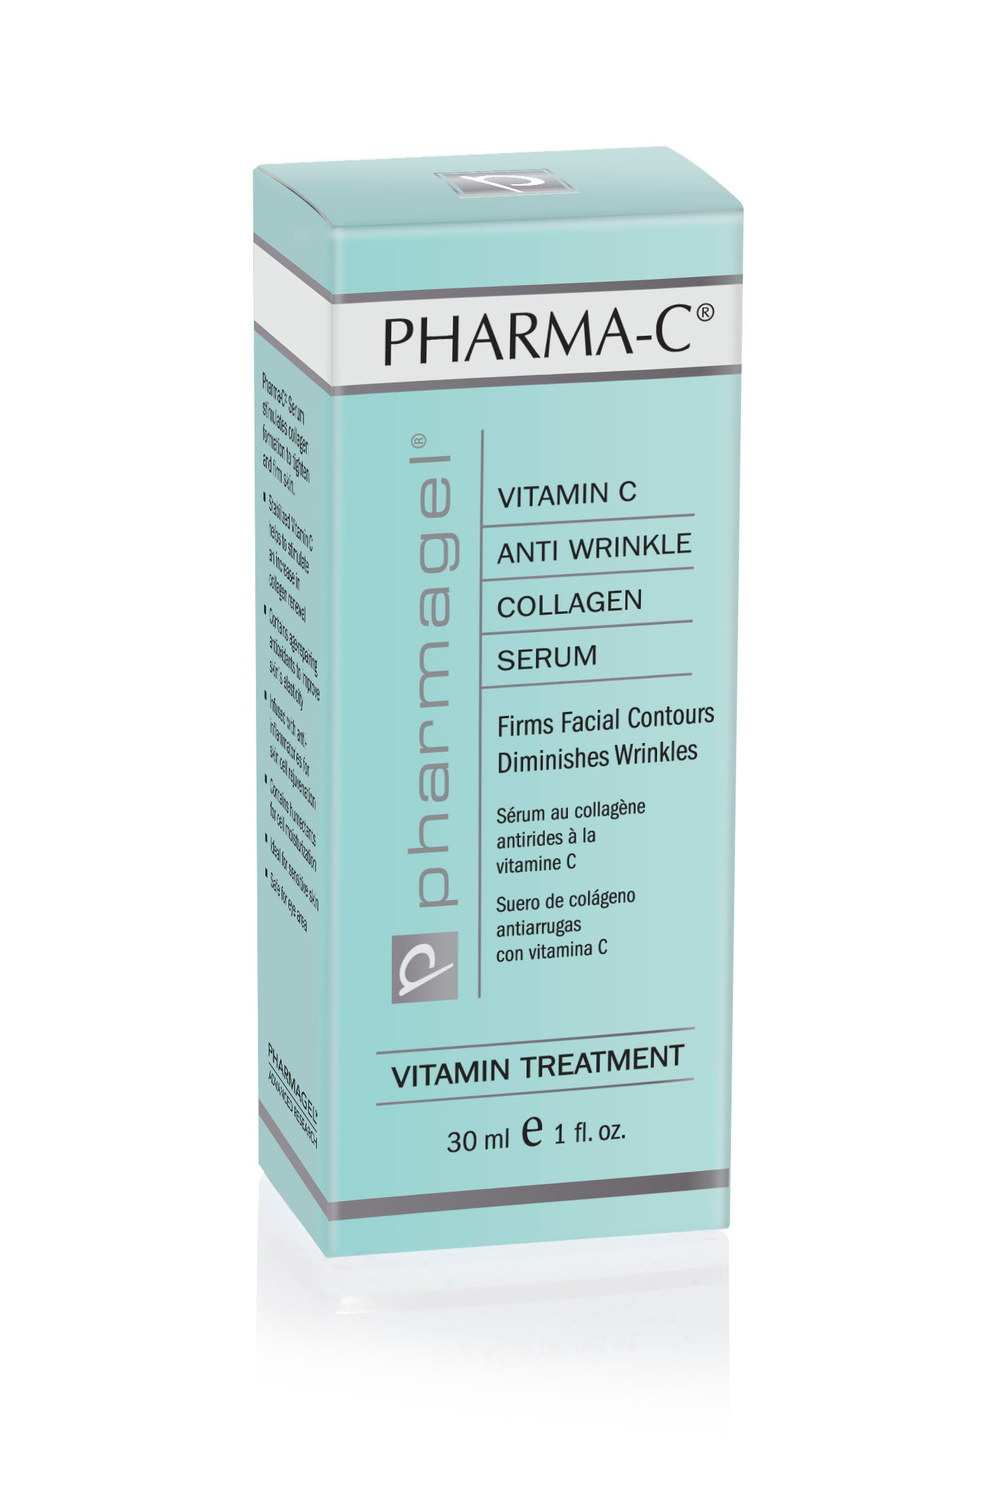 PHARMA-C SERUM  This unique serum enhances and accelerates skin's repair by actively promoting collagen formation. Pharmagel's unique PHARMA-C SERUM has a 10% level of all botanical Magnesium Ascorbyl Phosphate (stabilized Vitamin C). This ingredient is the only stable source of Vitamin C that has been scientifically proven to rapidly absorb into the skin and promote the formation of collagen. Fragrance-free and oil-free, it can be used safely around the eyes.